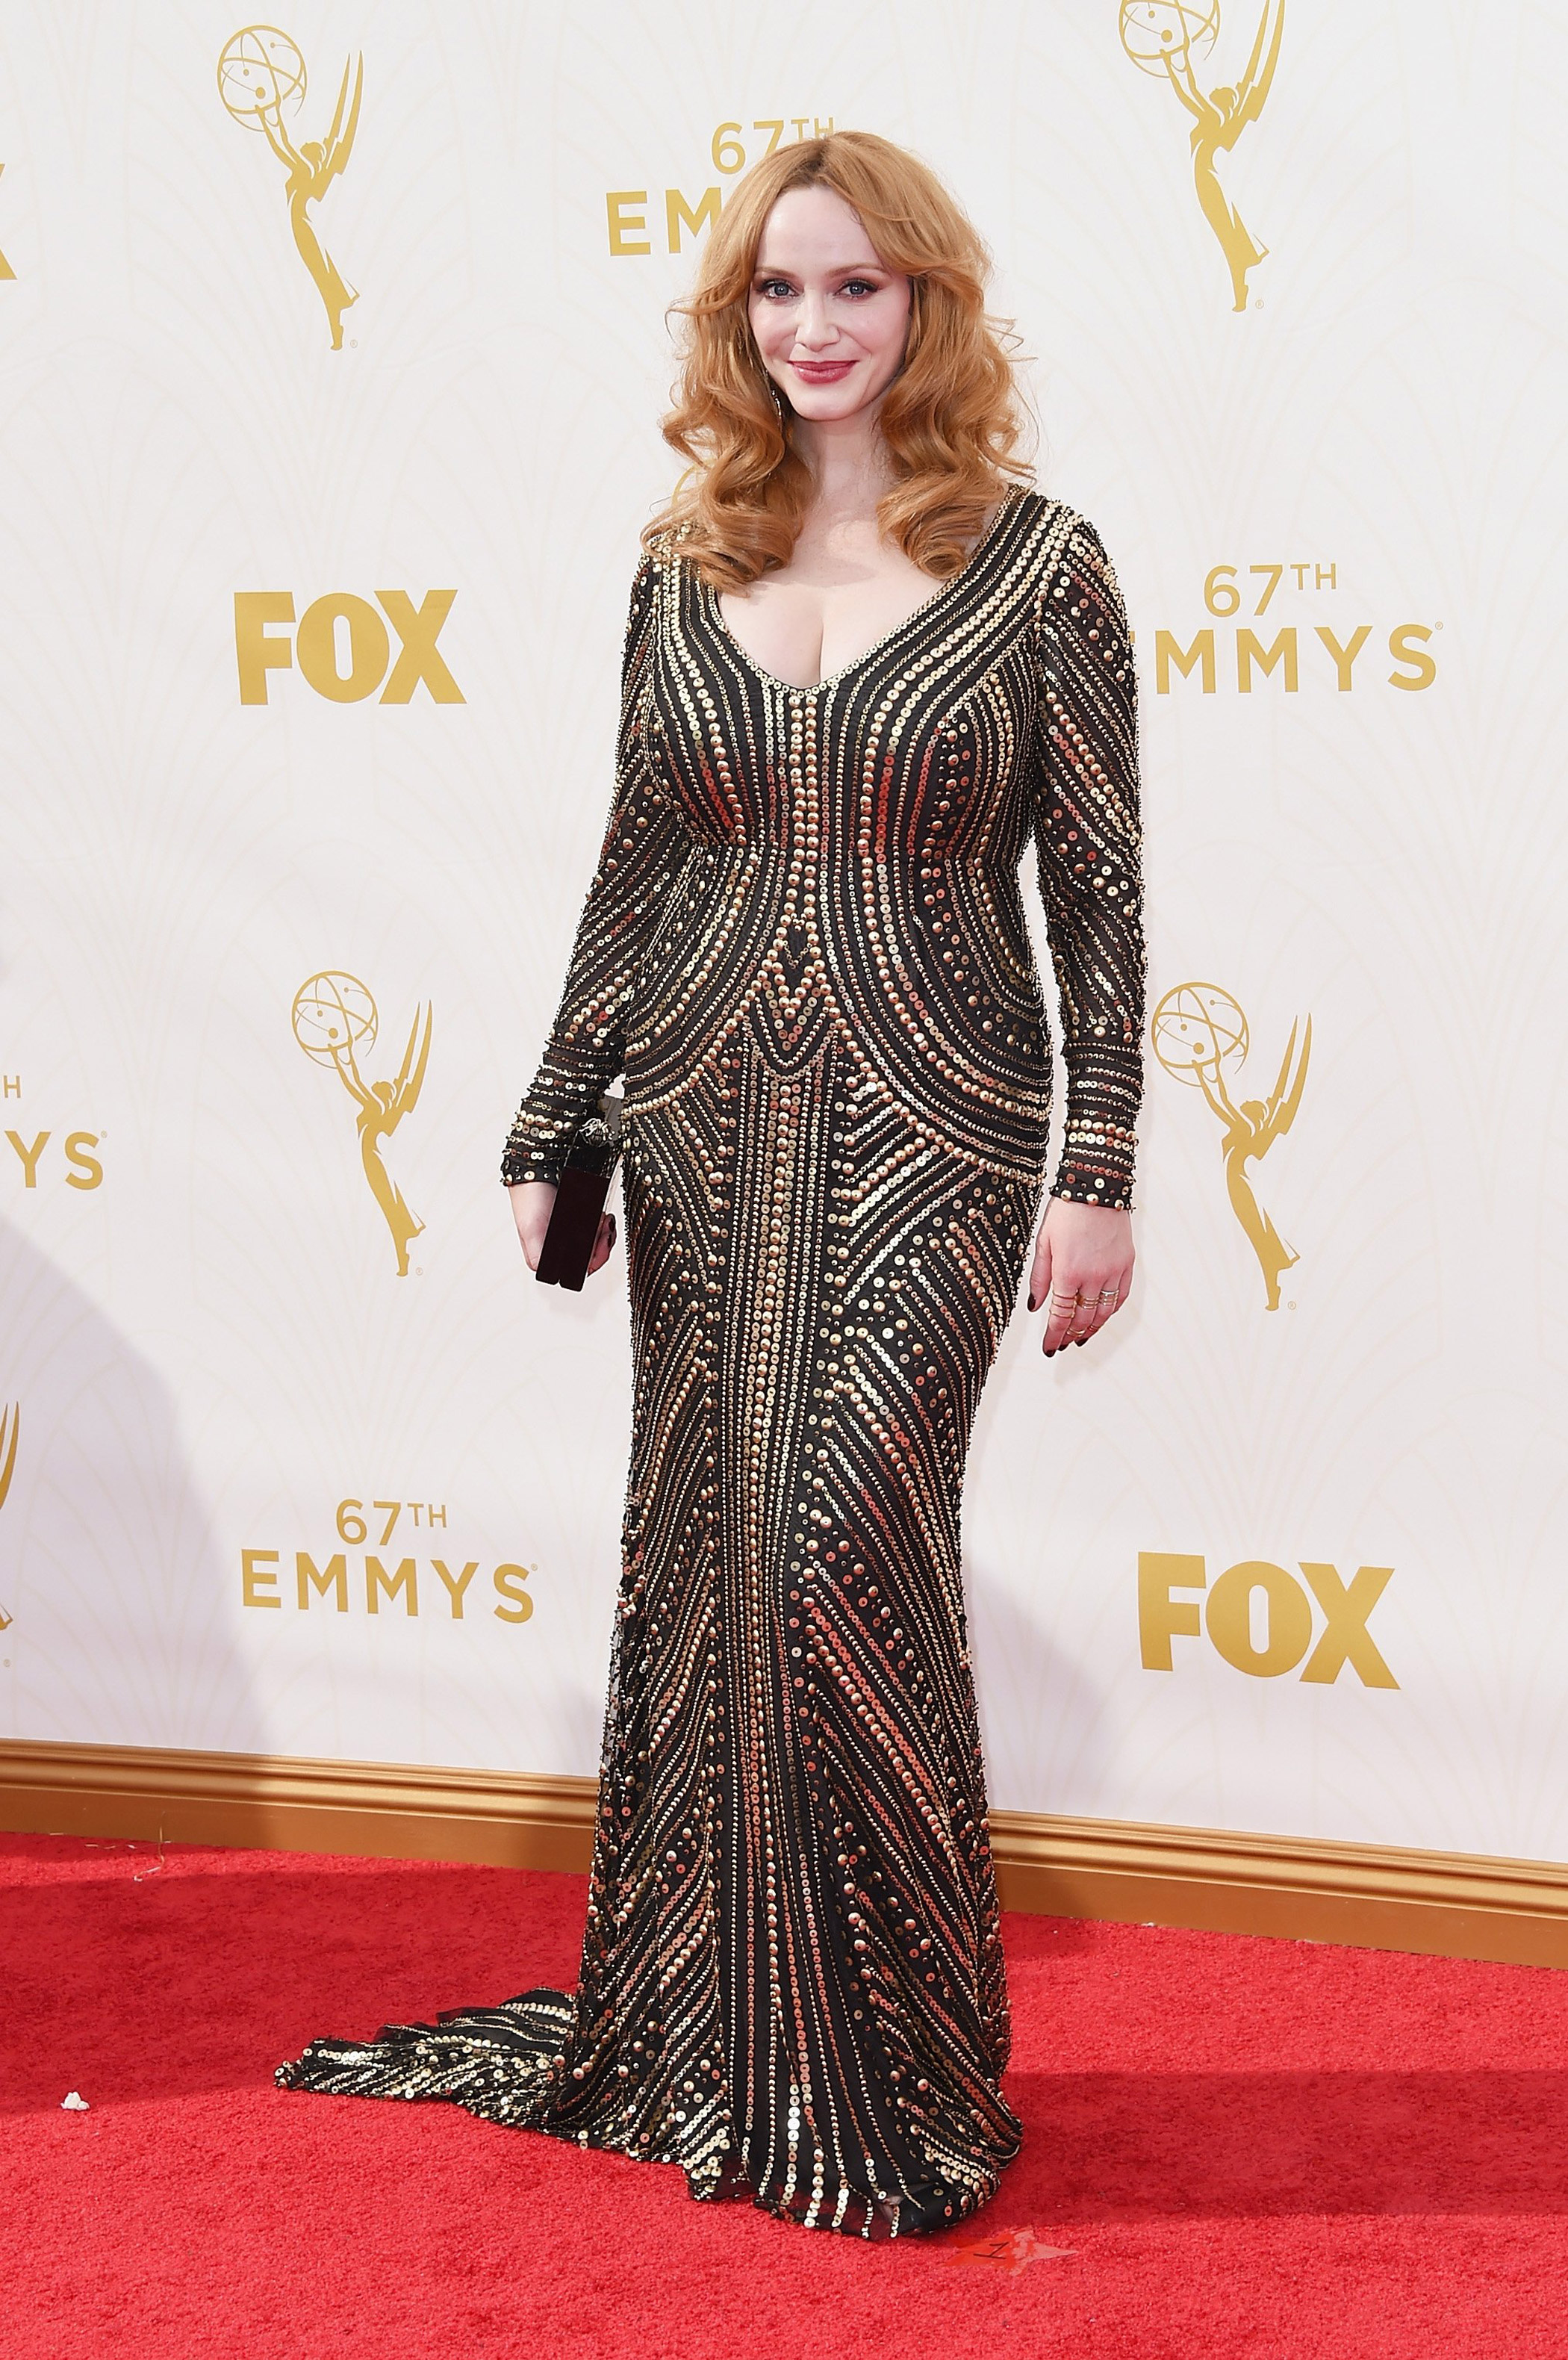 Christina Hendricks at the 67th Emmy Award on Sept. 20, 2015 in Los Angeles.